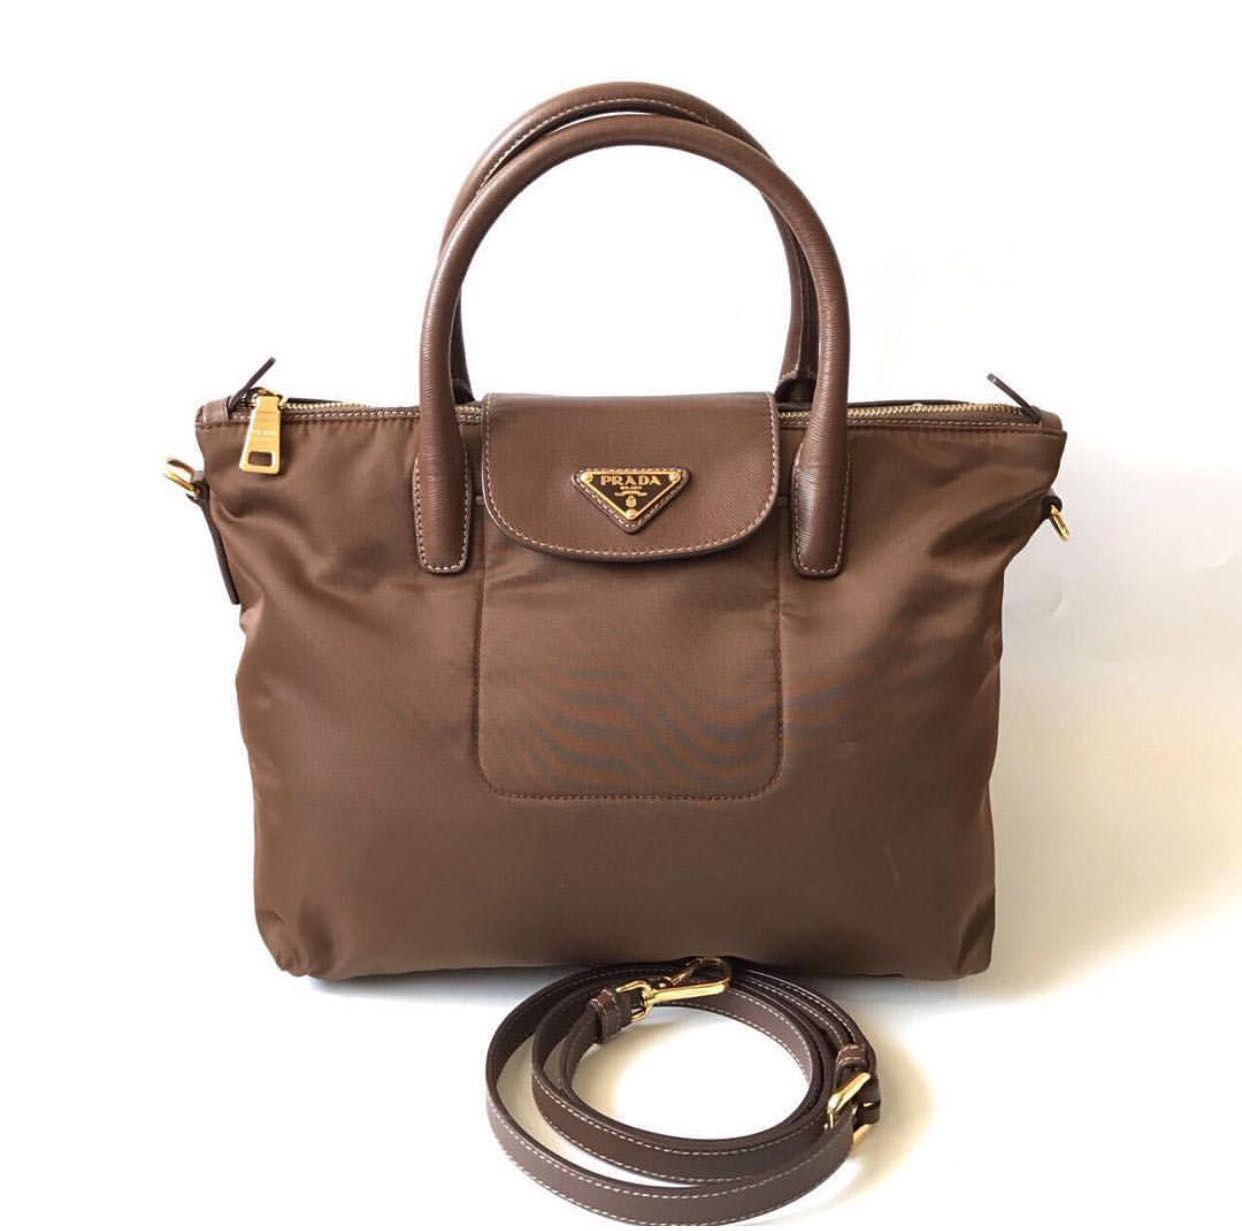 d8176426d328 ... coupon code for prada bag sale luxury bags wallets handbags on carousell  19d4b a78ca